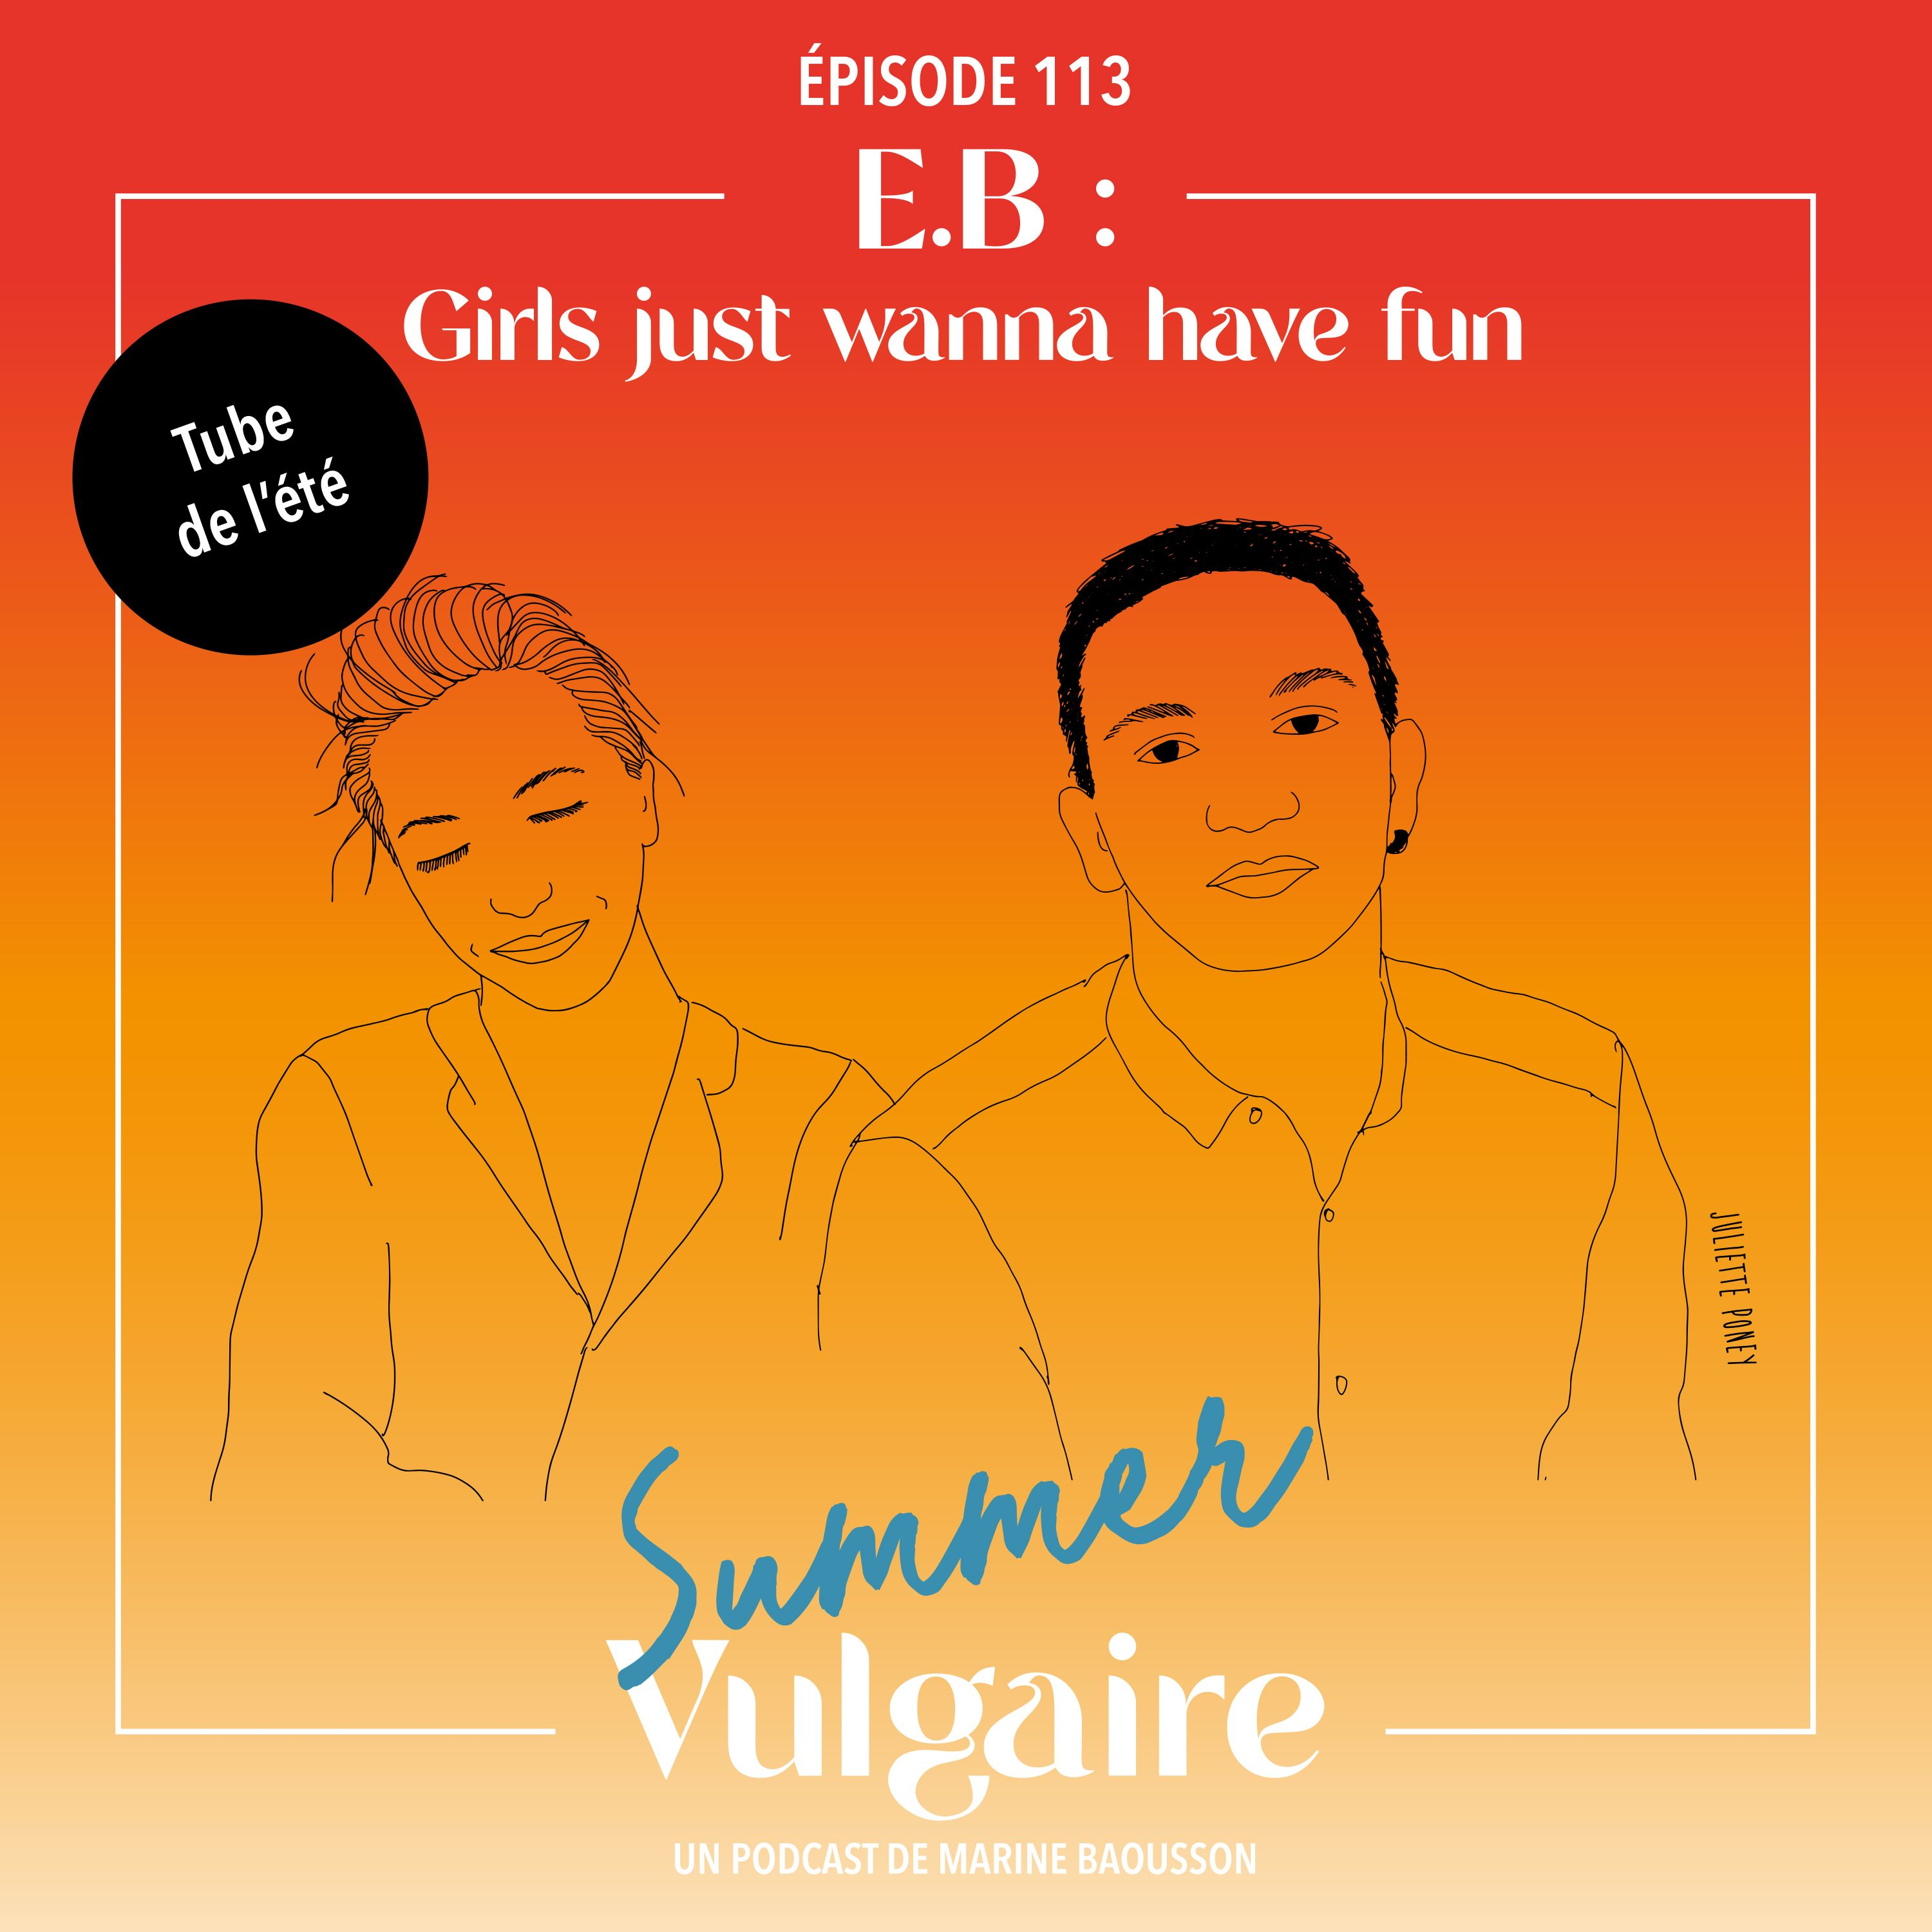 E.B : Girls just want to have fun